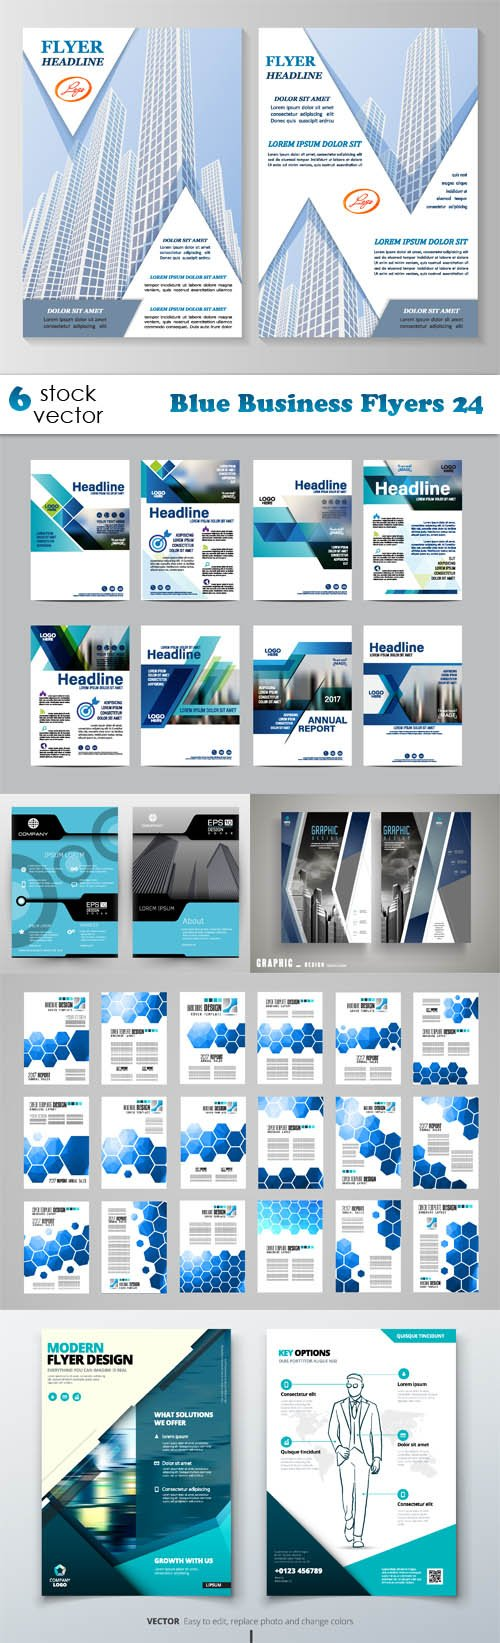 Vectors - Blue Business Flyers 24